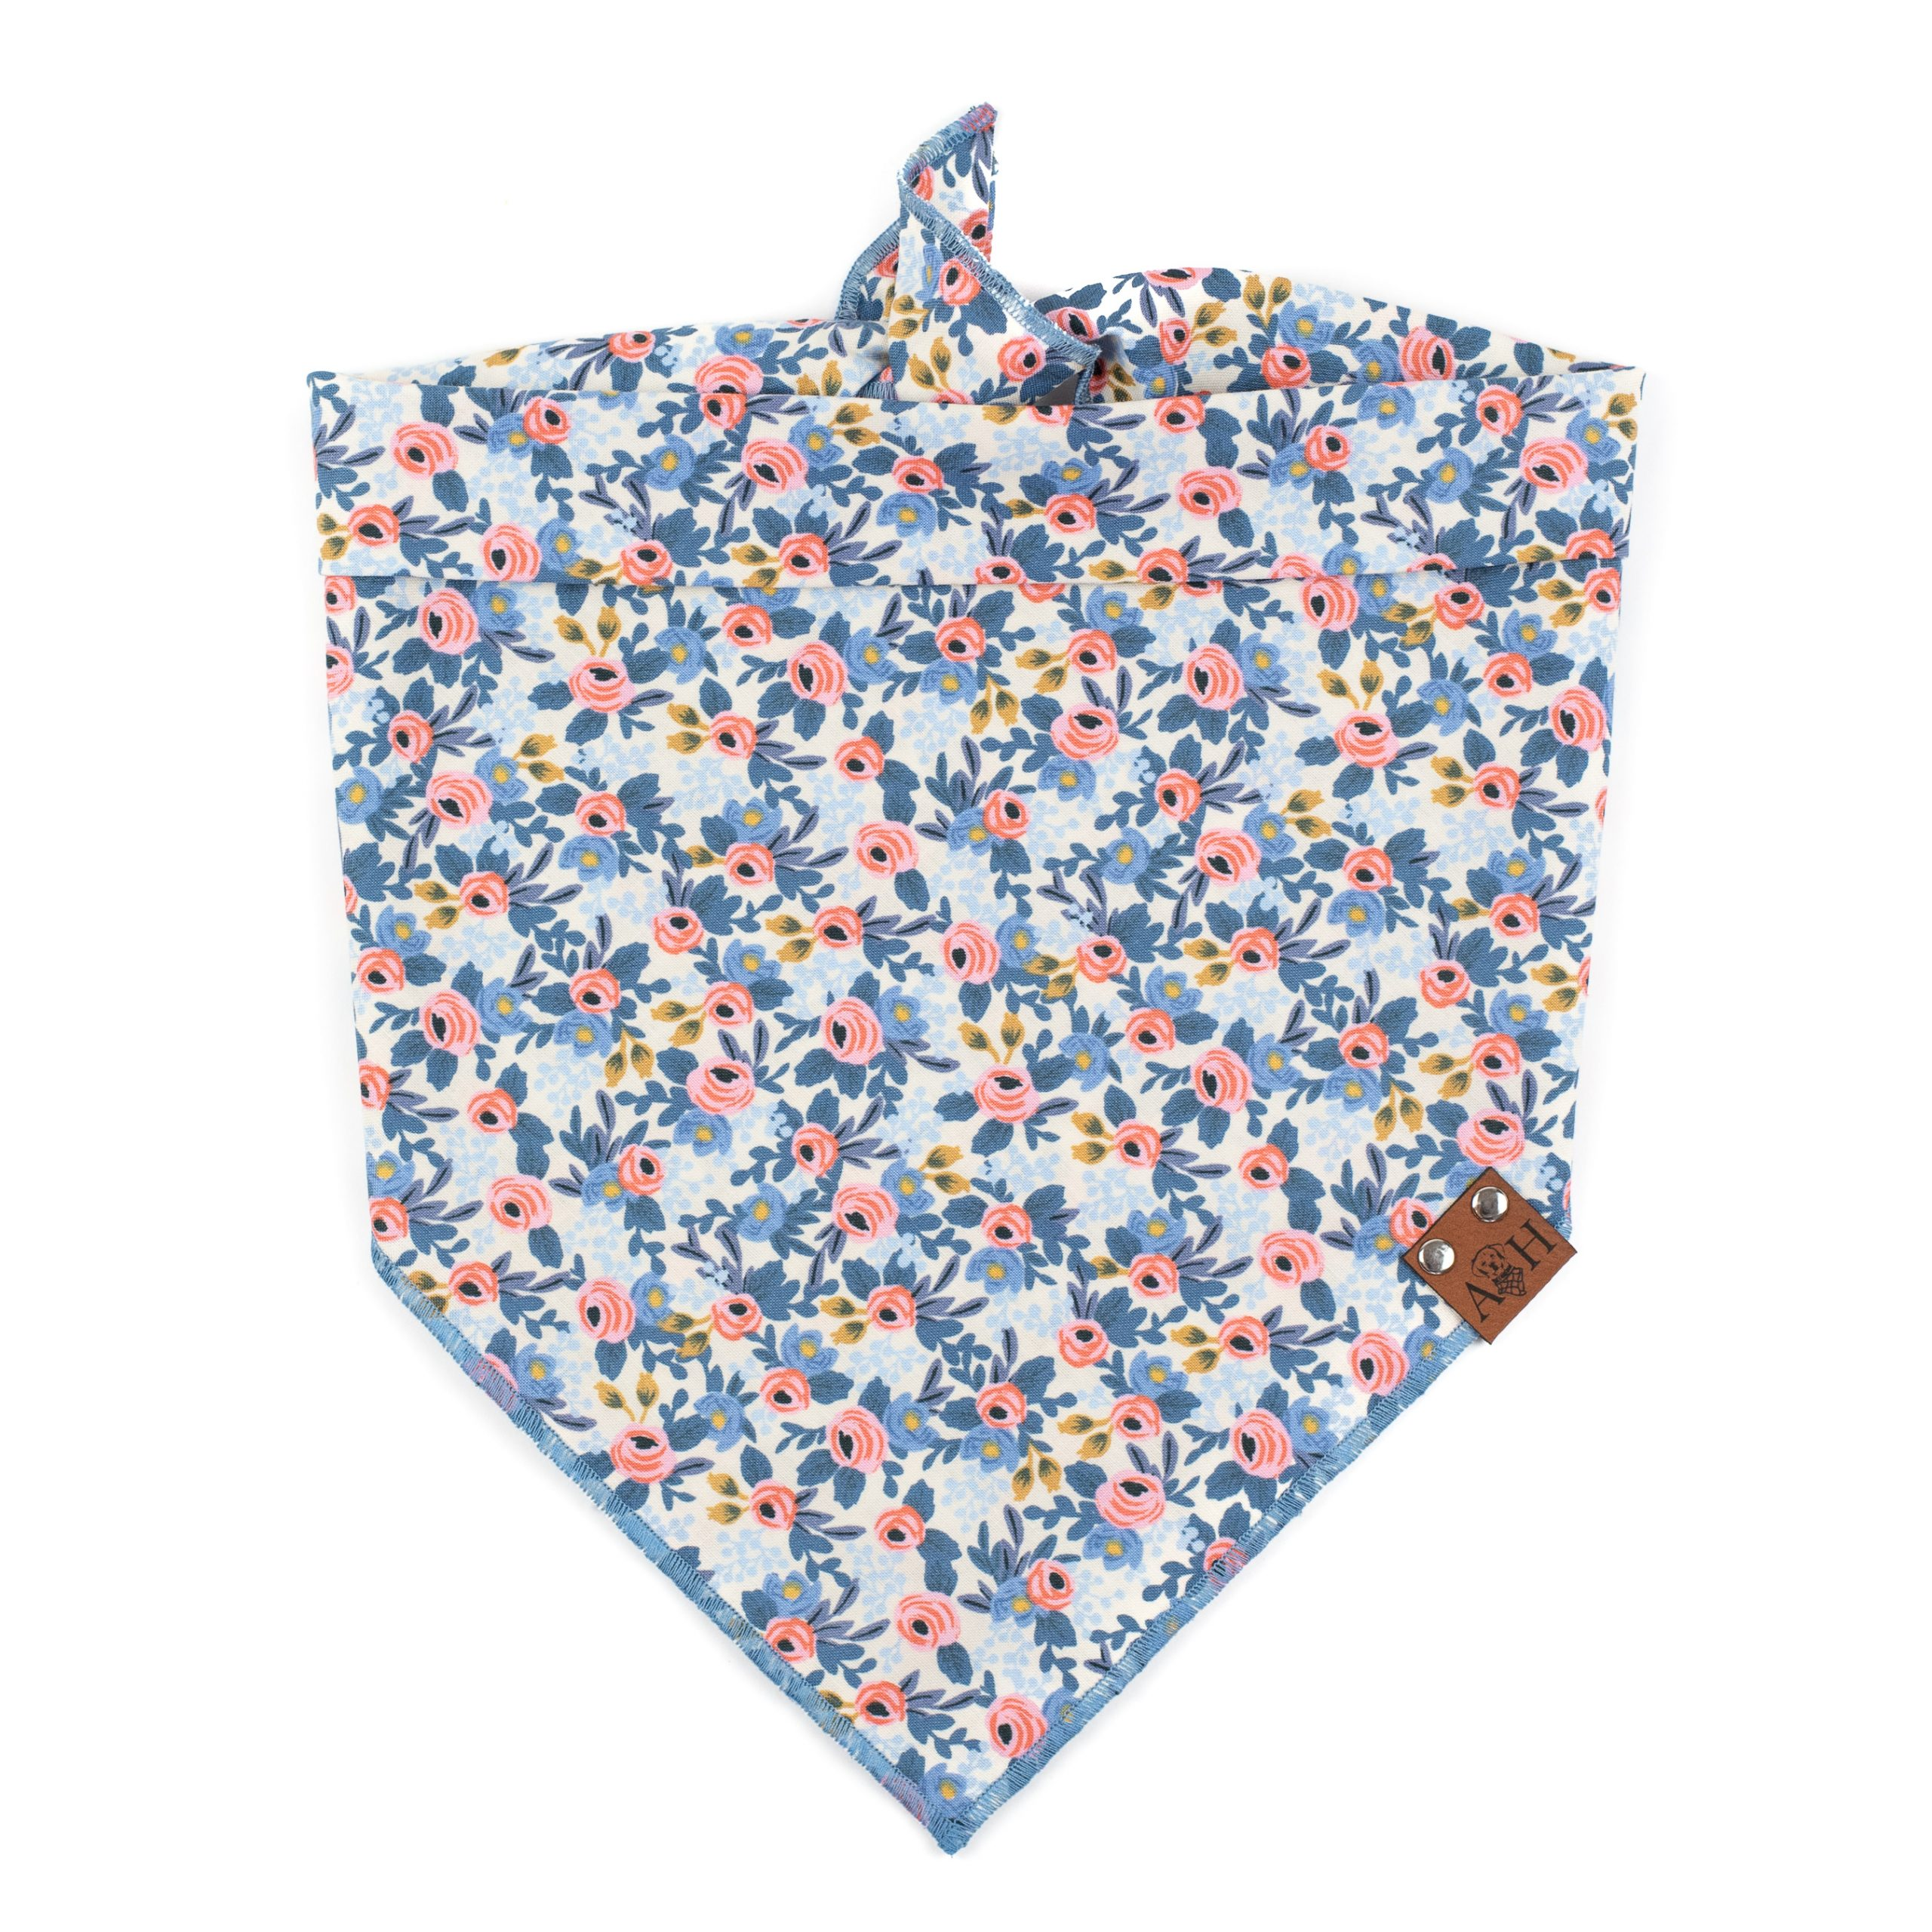 Fluer Dog Bandana with floral pattern in lavender pink and blue tones